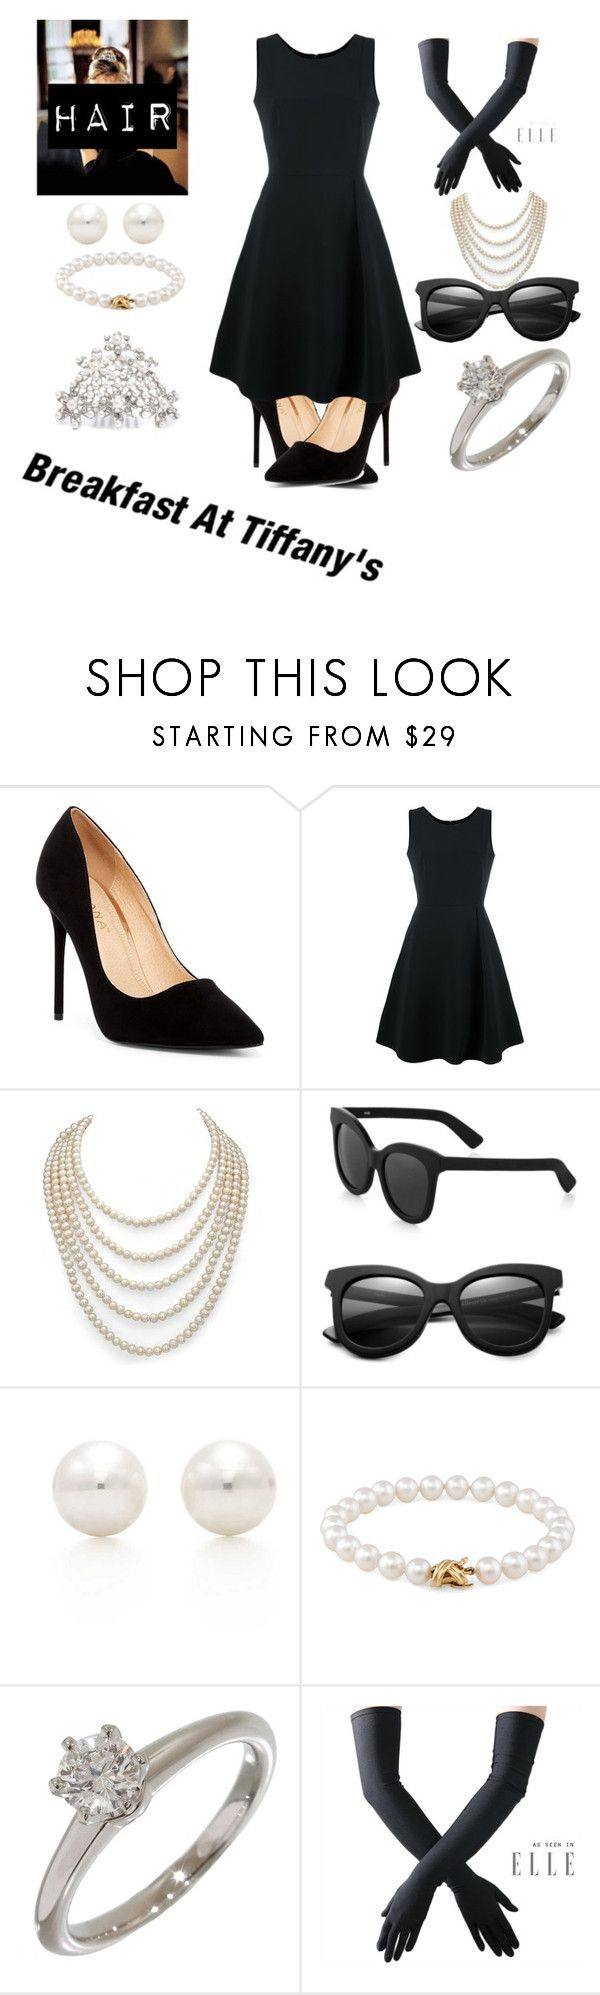 """""""Crazy About Tiffany's! """" by sidneykmail-1 ❤ liked on Polyvore featuring Liliana, Tiffany & Co., Emporio Armani, DaVonna, Illesteva and Black"""